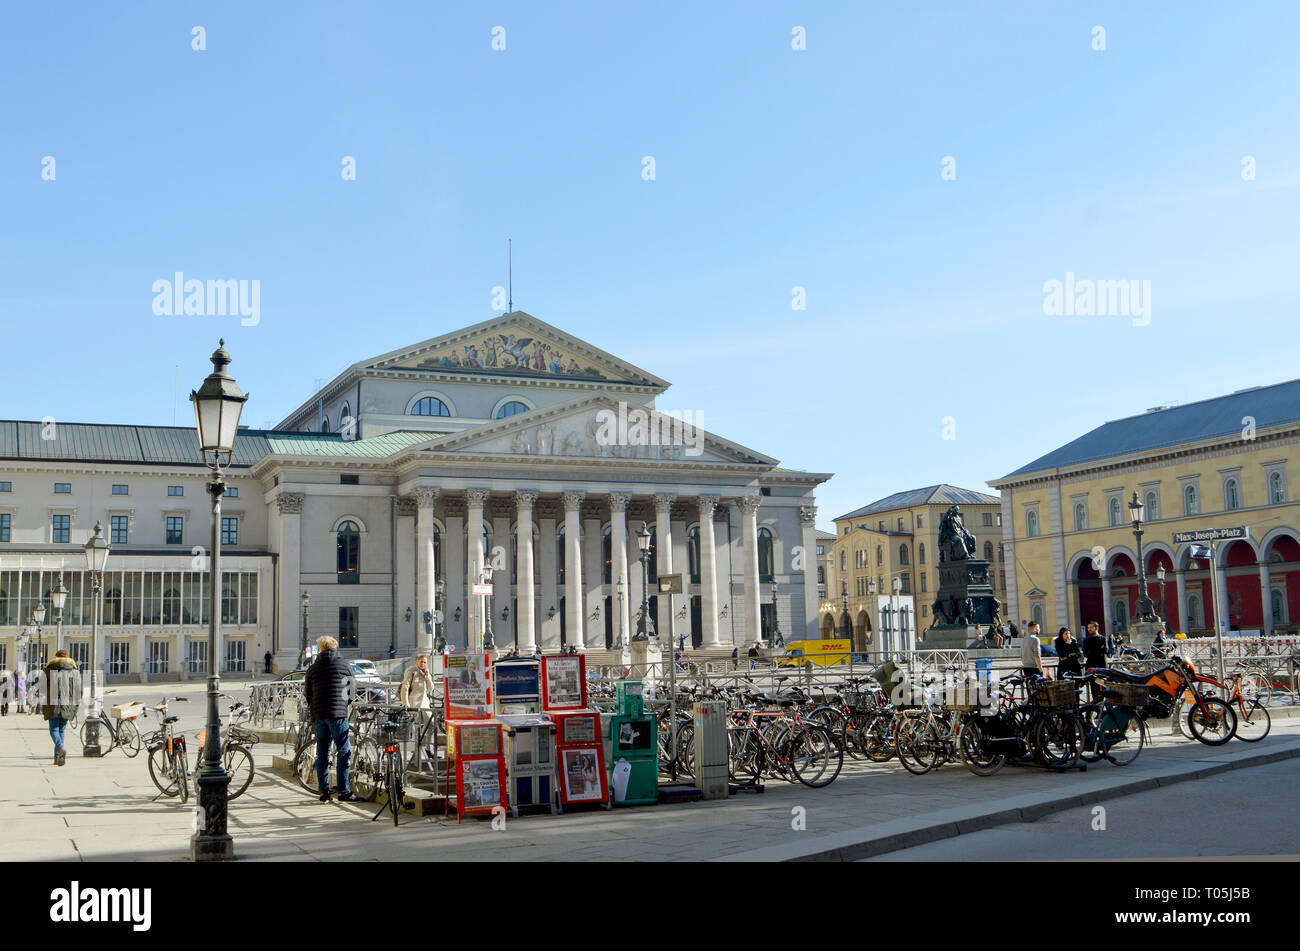 MUNICH, GERMANY - 25 FEBRUARY 2019:  Bicycles parked in winter sunshine on  Max-Joseph-Platz where a statue of Maximilian I stands in front of the Nat - Stock Image